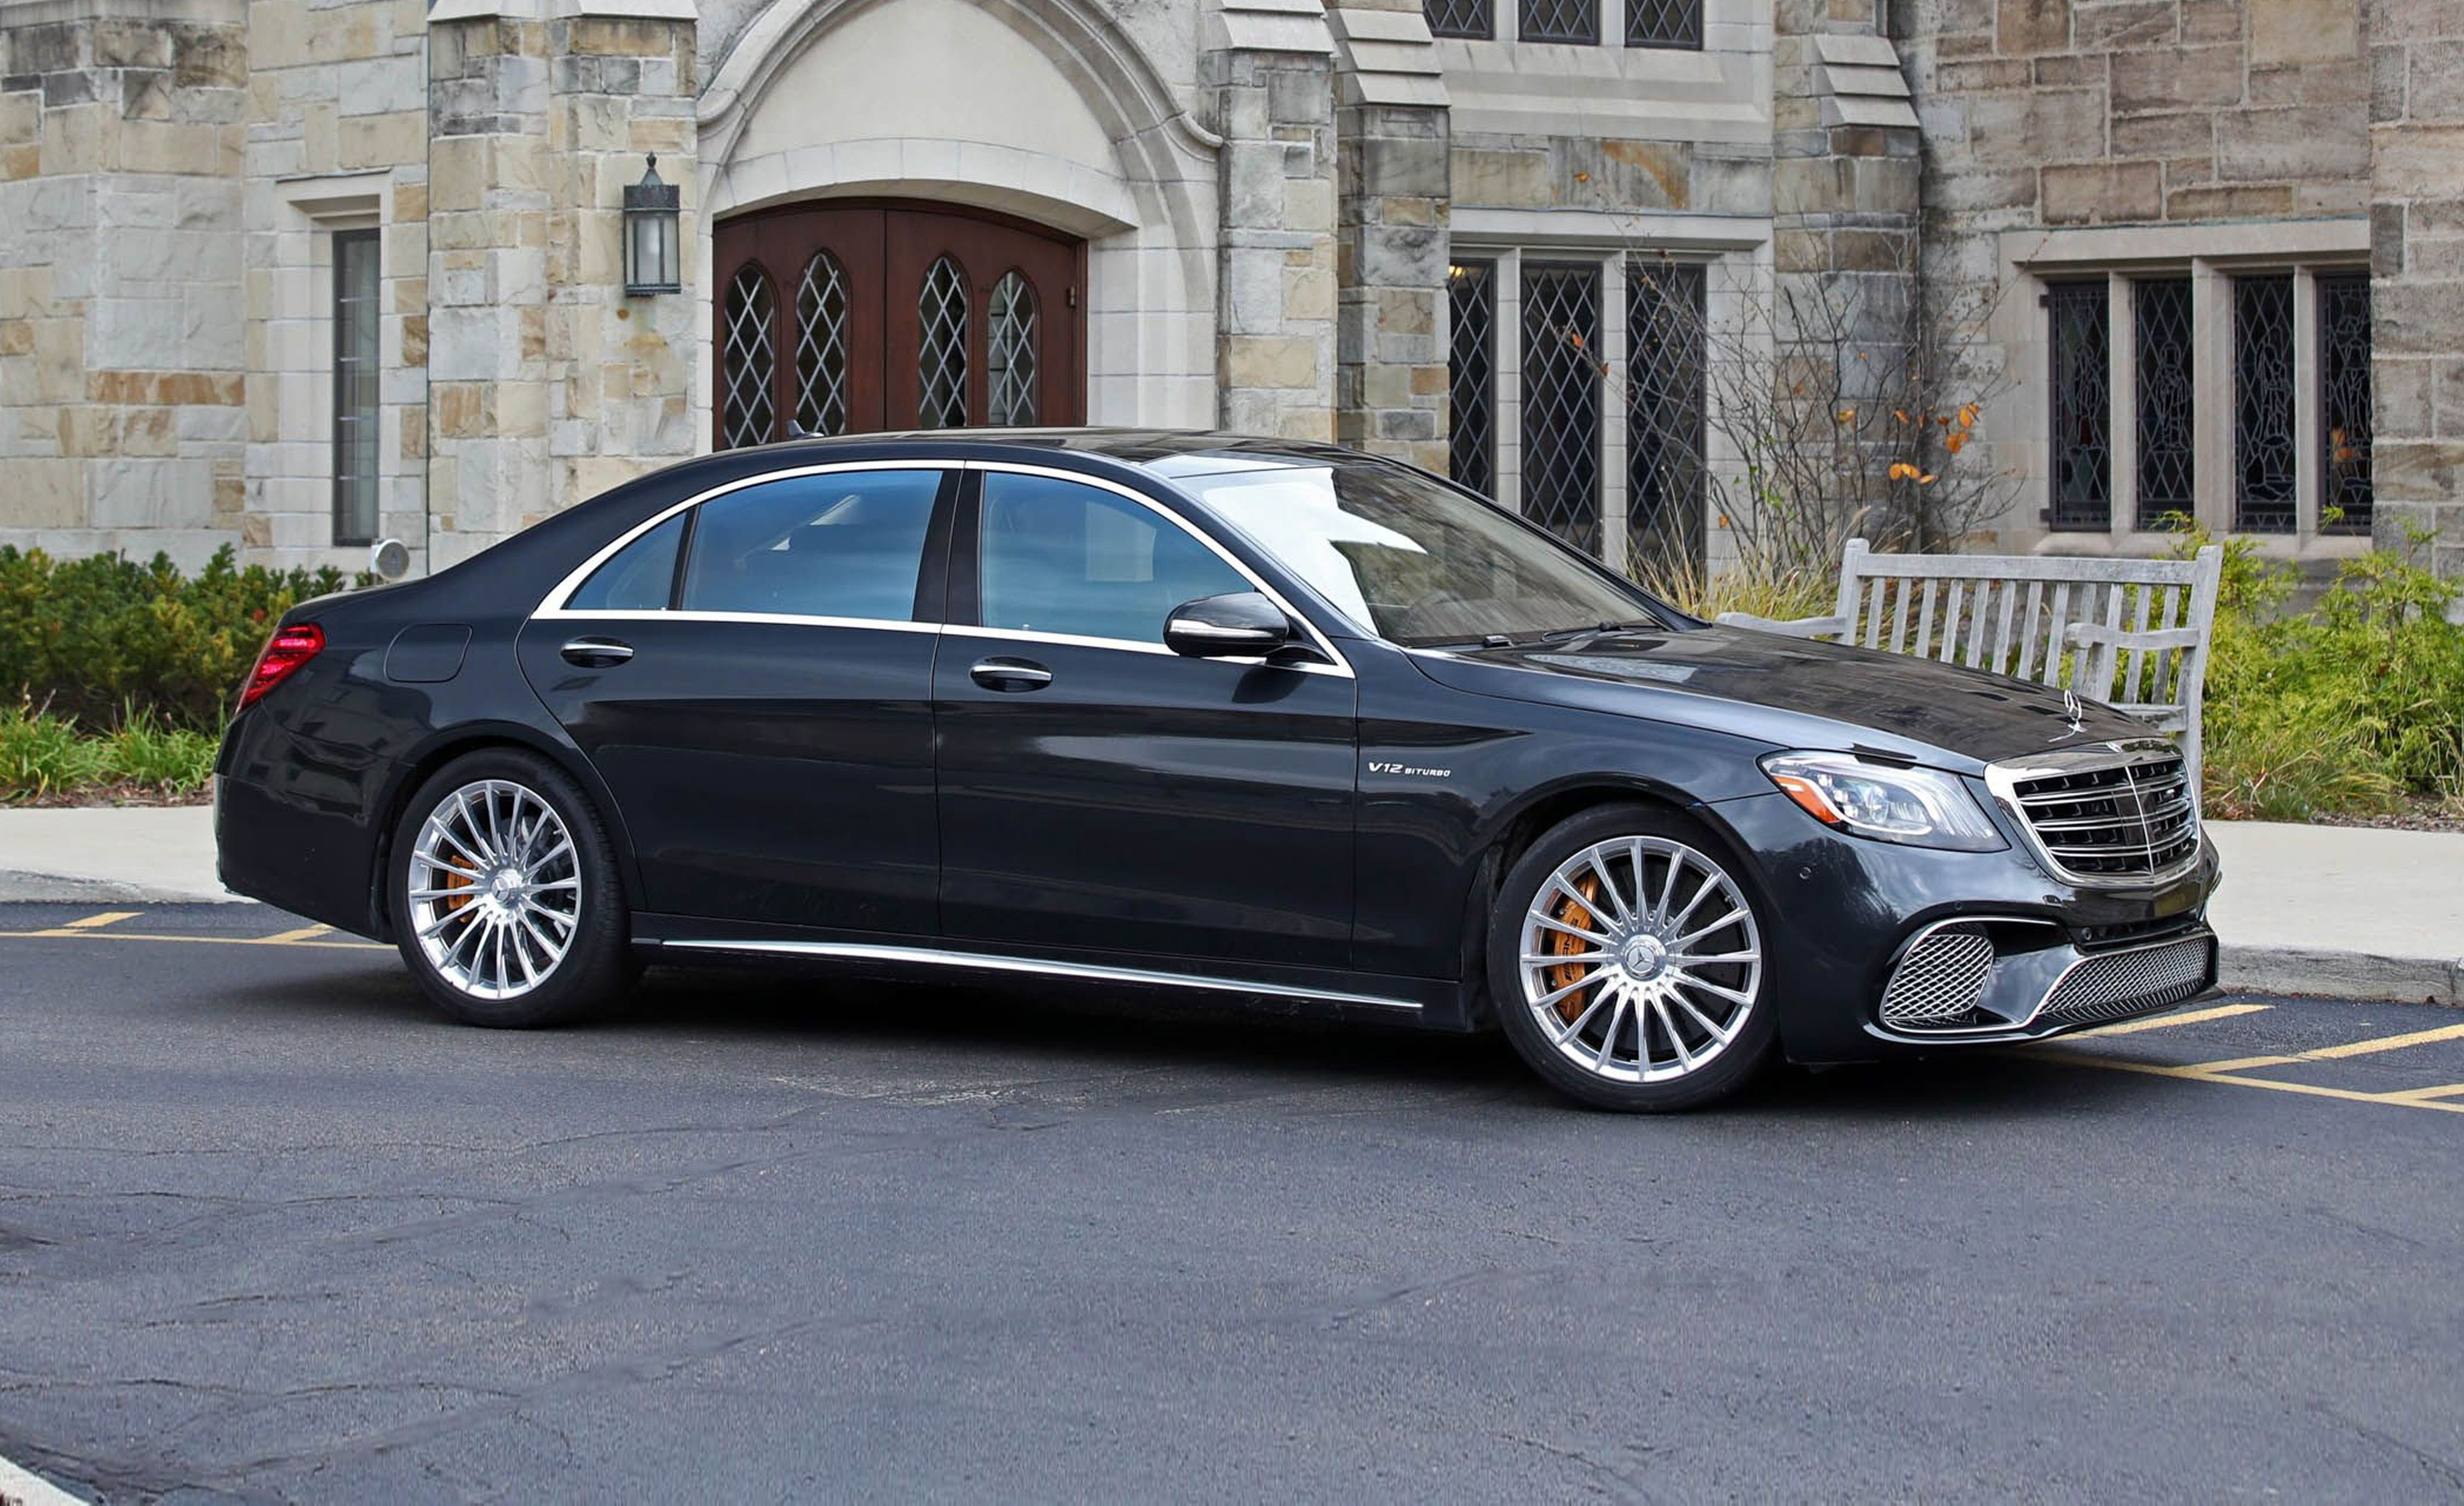 2019 Mercedes Amg S63 S65 Reviews Price Photos And Specs Car Driver